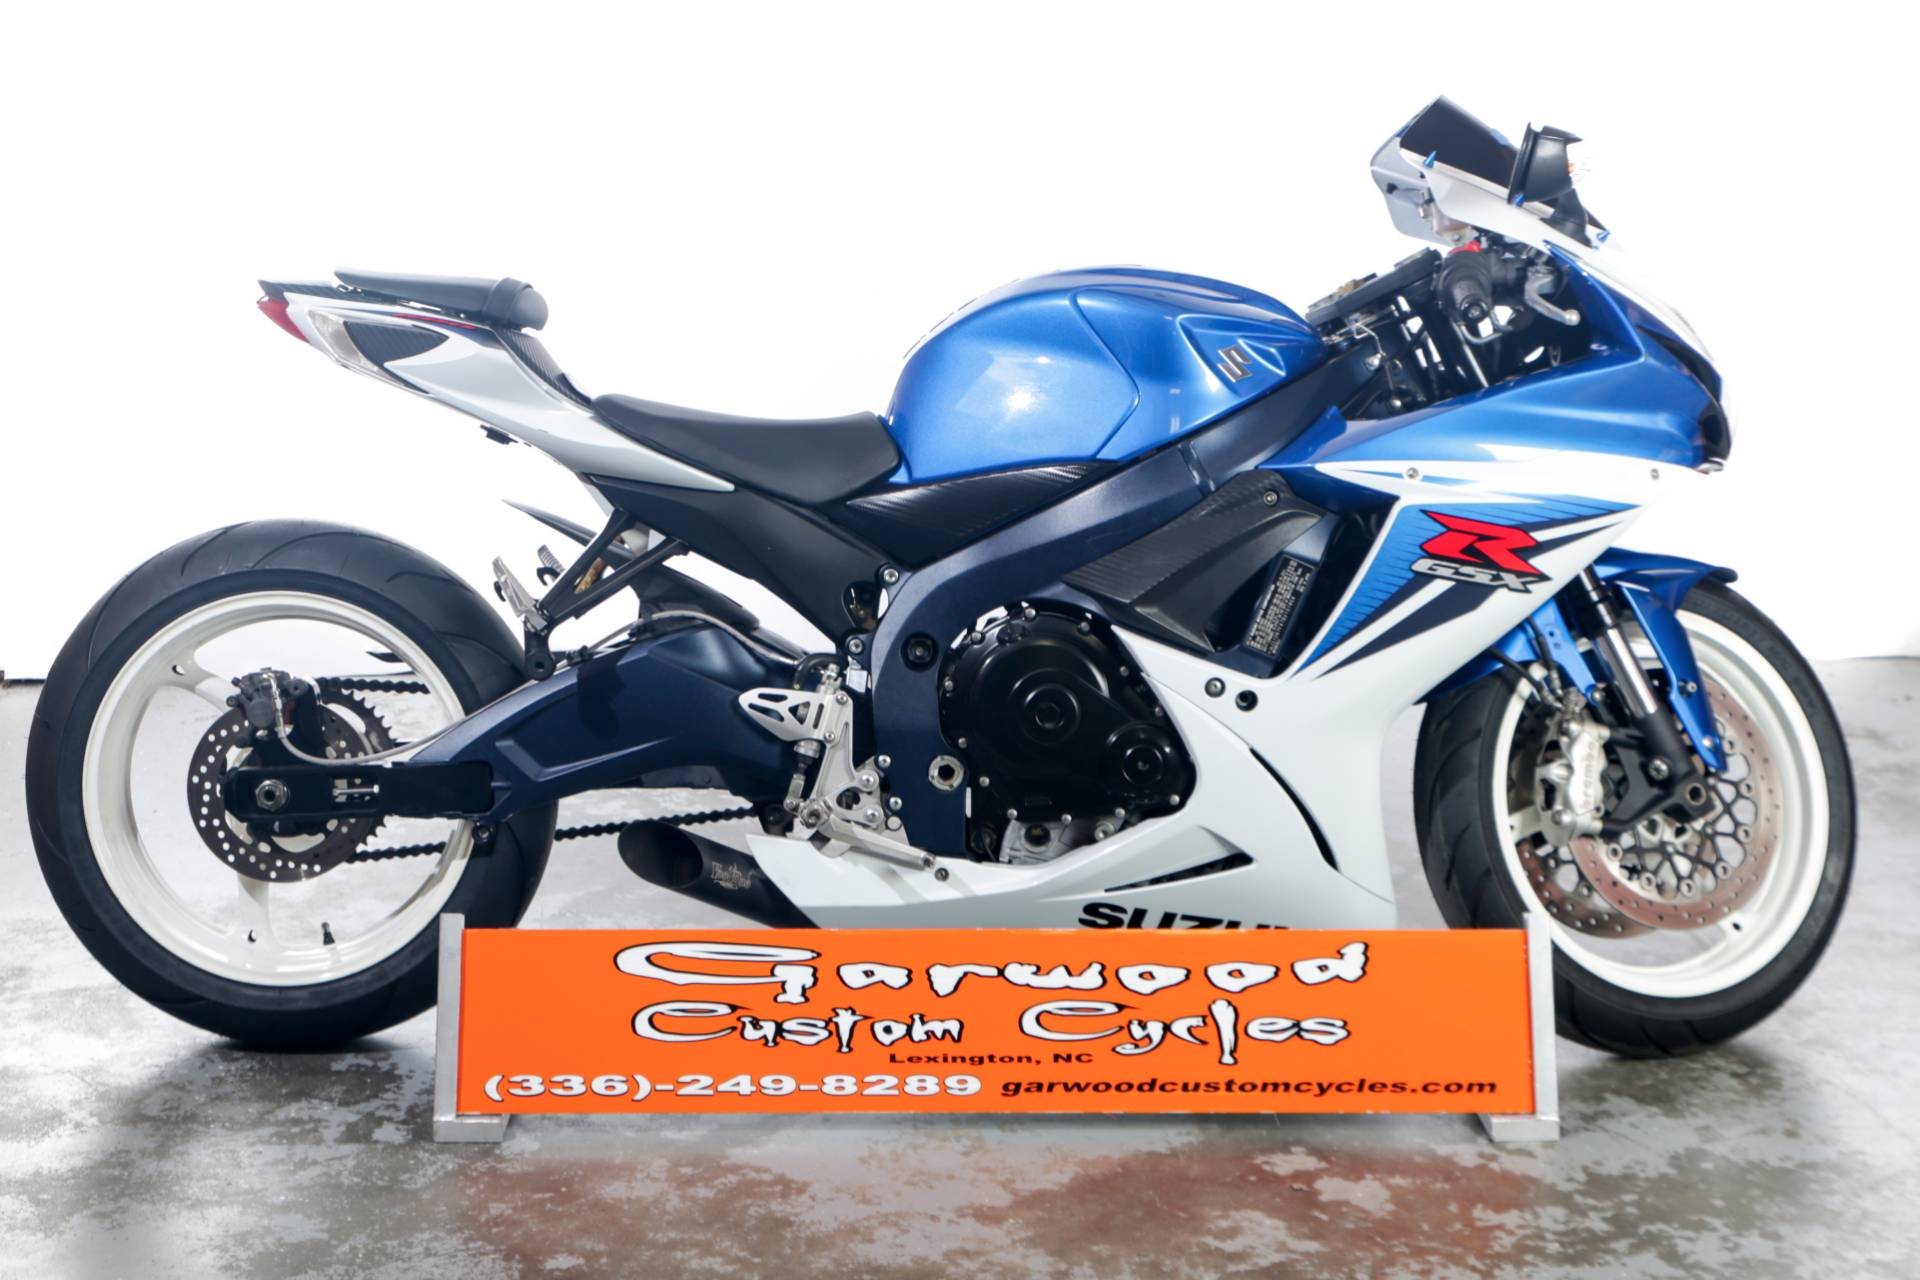 2011 Suzuki GSXR600 in Lexington, North Carolina - Photo 1